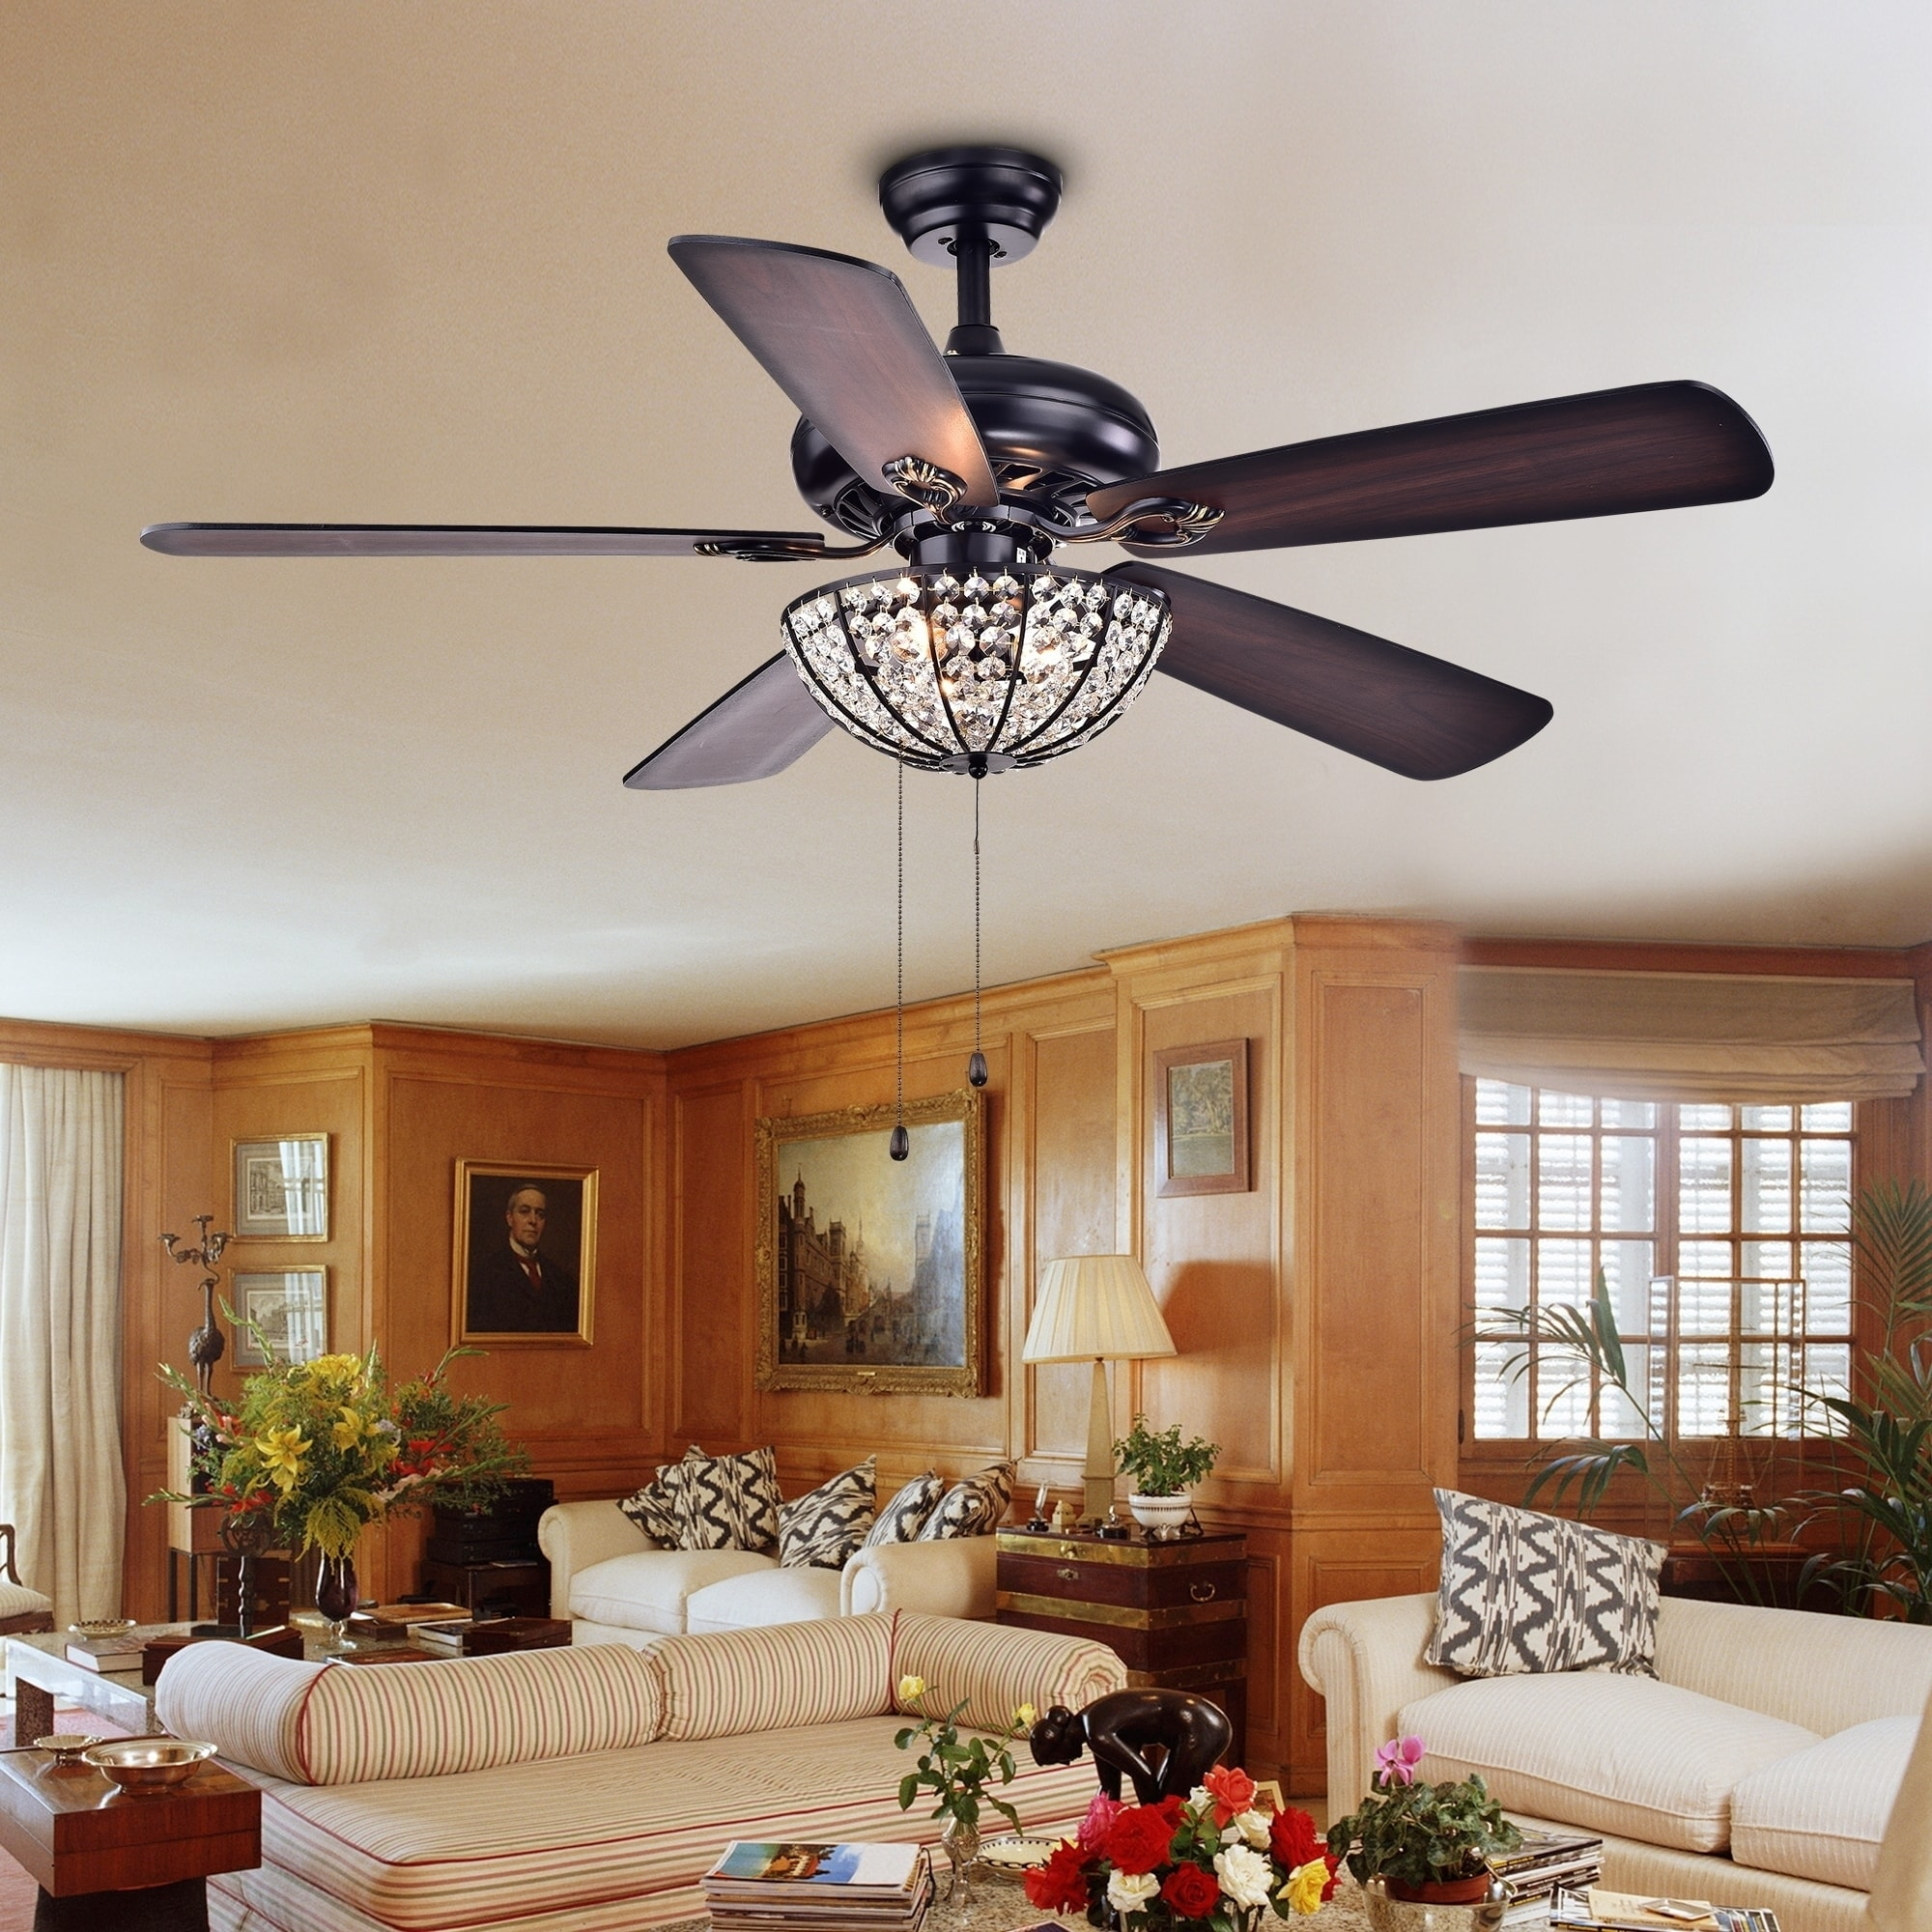 https://ak1.ostkcdn.com//images/products/13404427/Hannele-Bowl-3-light-5-blade-Black-52-inch-Ceiling-Fan-22849a8c-b342-4d99-a256-bed3040b12fa.jpg